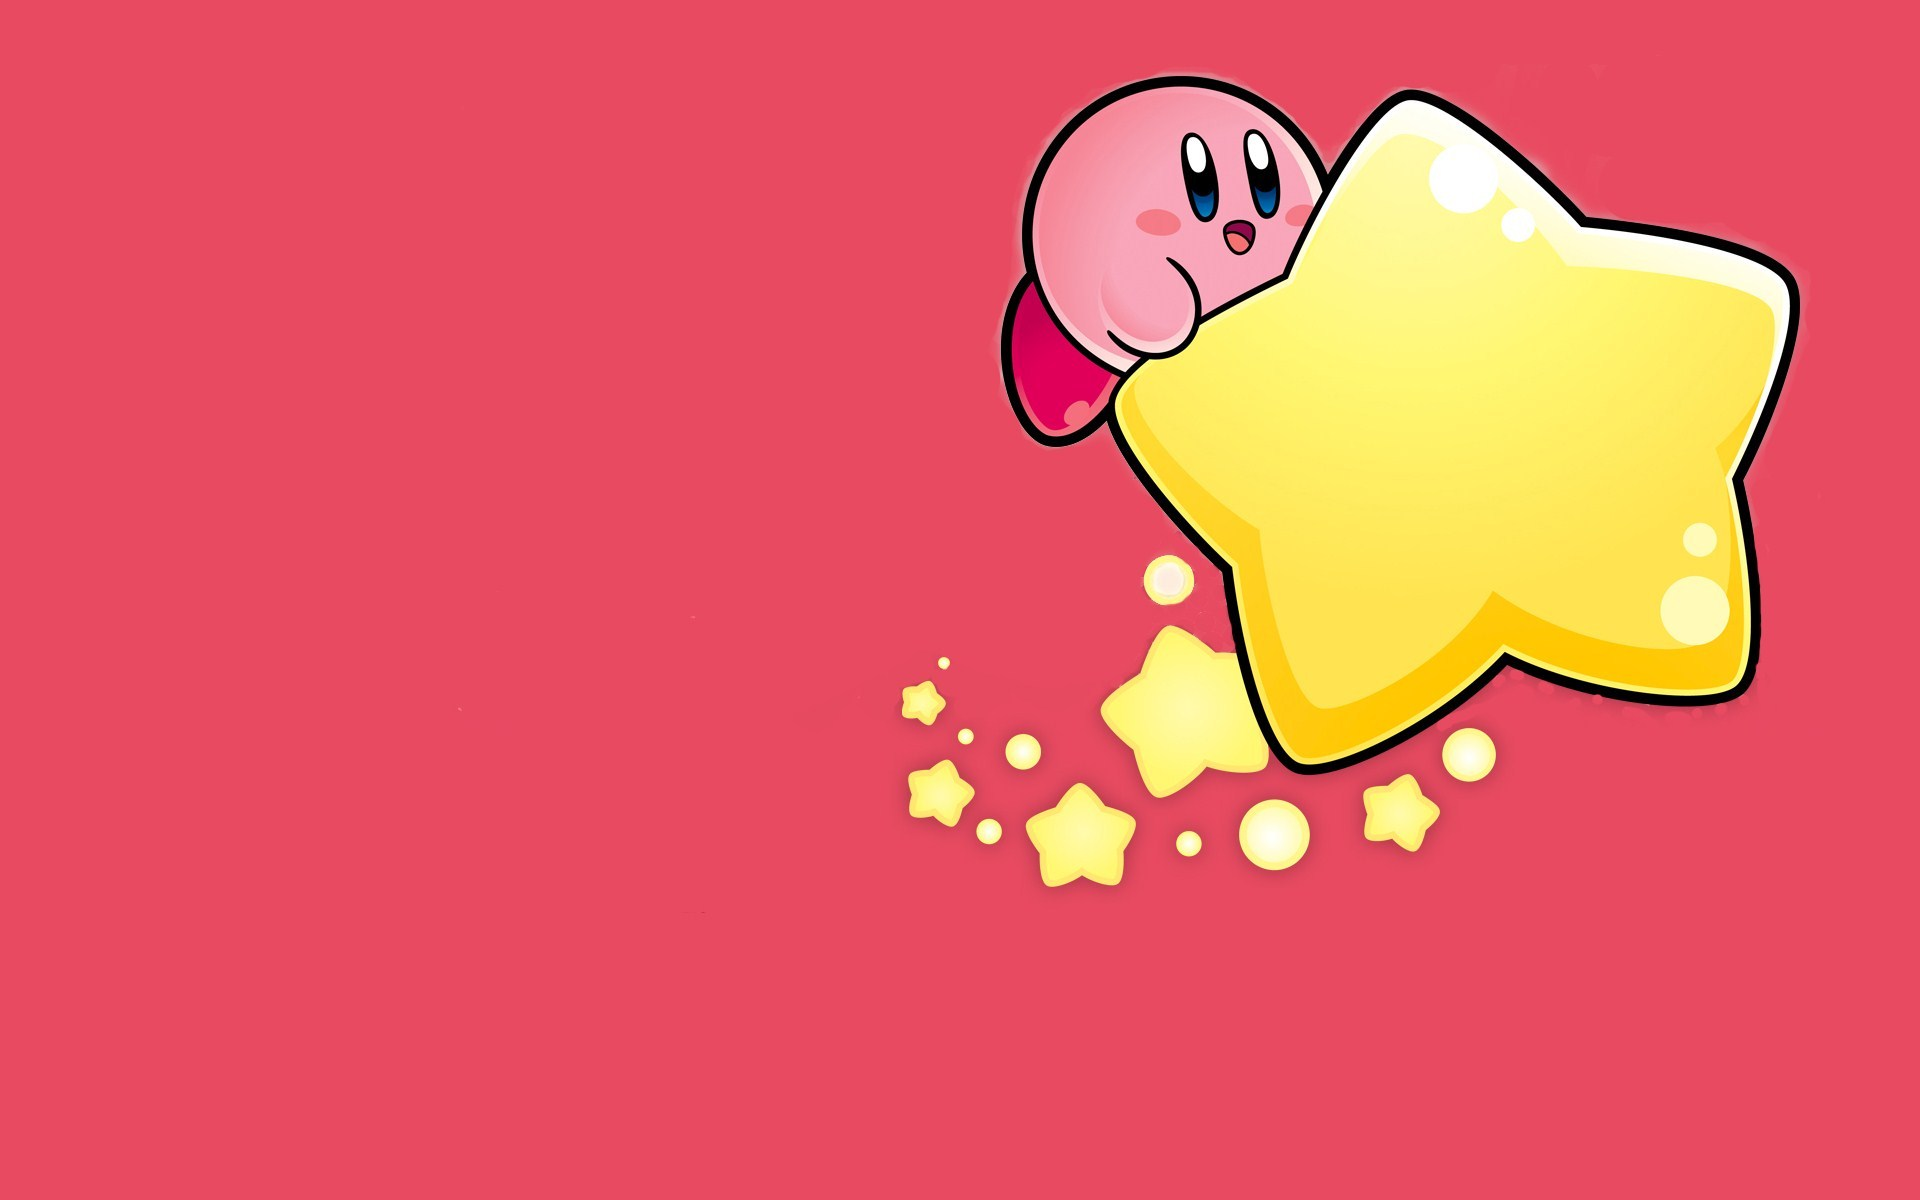 Big Kirby Wallpapers GsFDcYcom 1920x1200